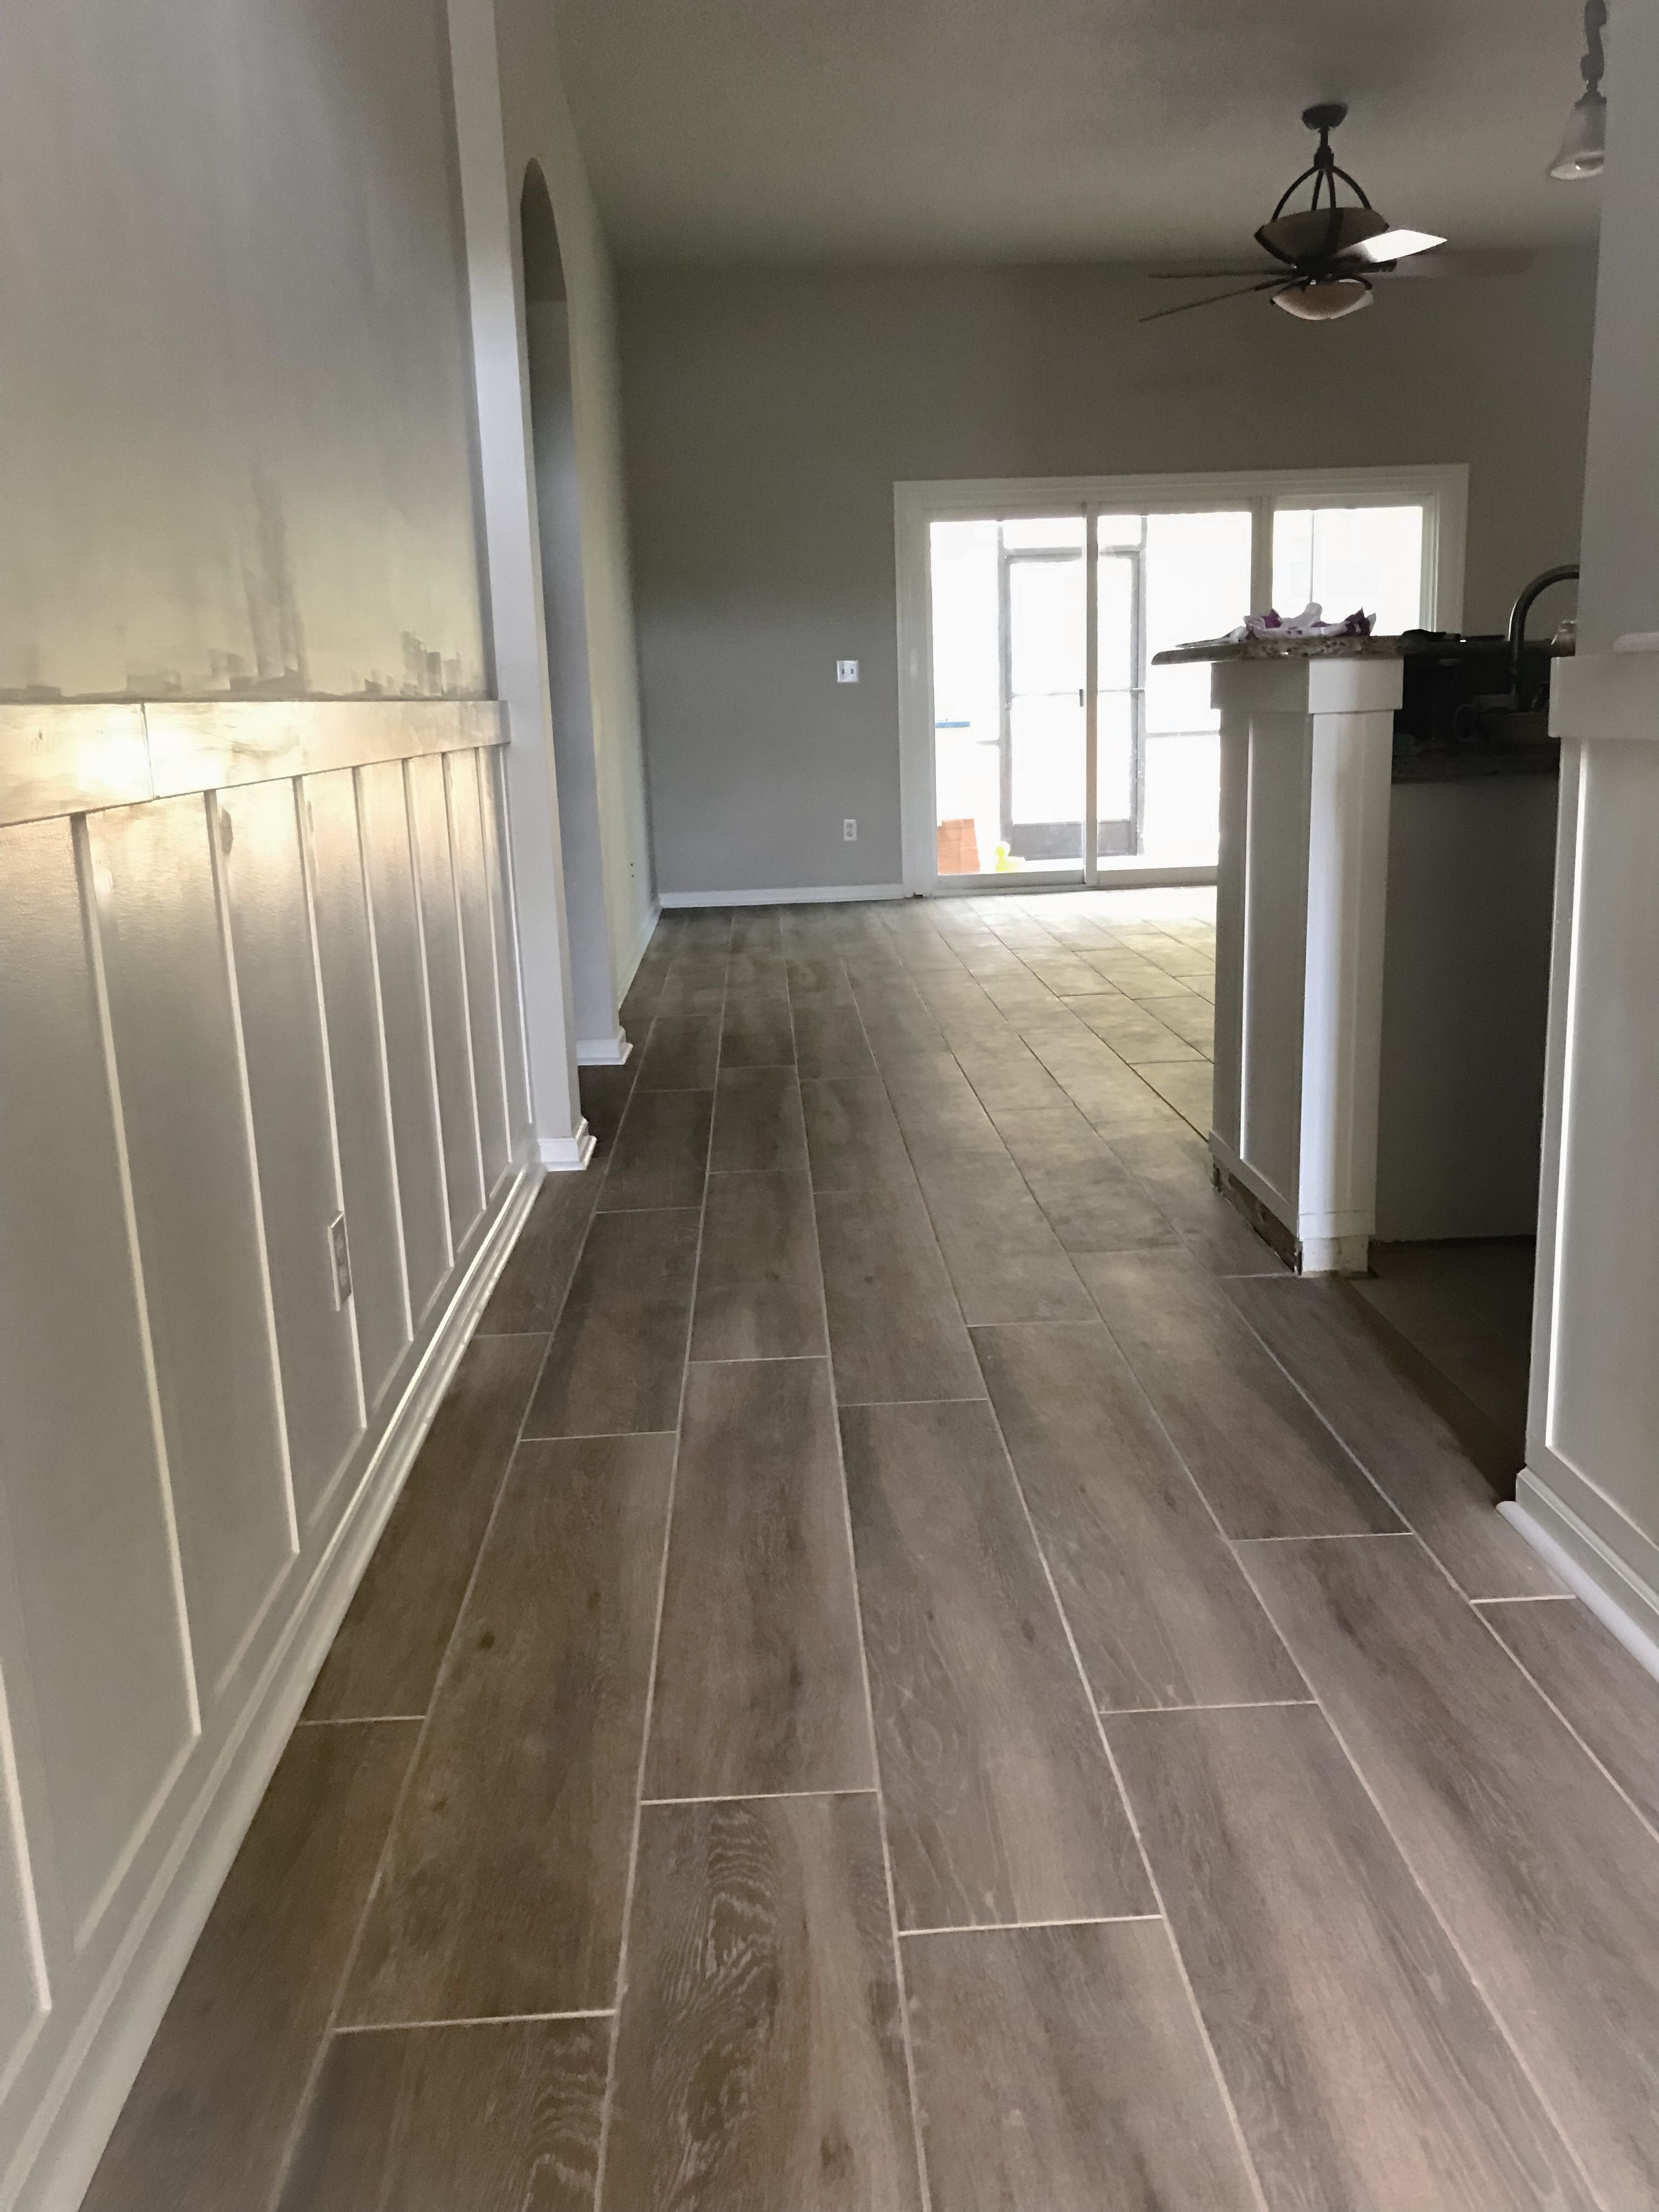 25 Stone Flooring Ideas With Pros And Cons: Home Remodeling Ideas Pros And Cons Of Tile Floors Wood